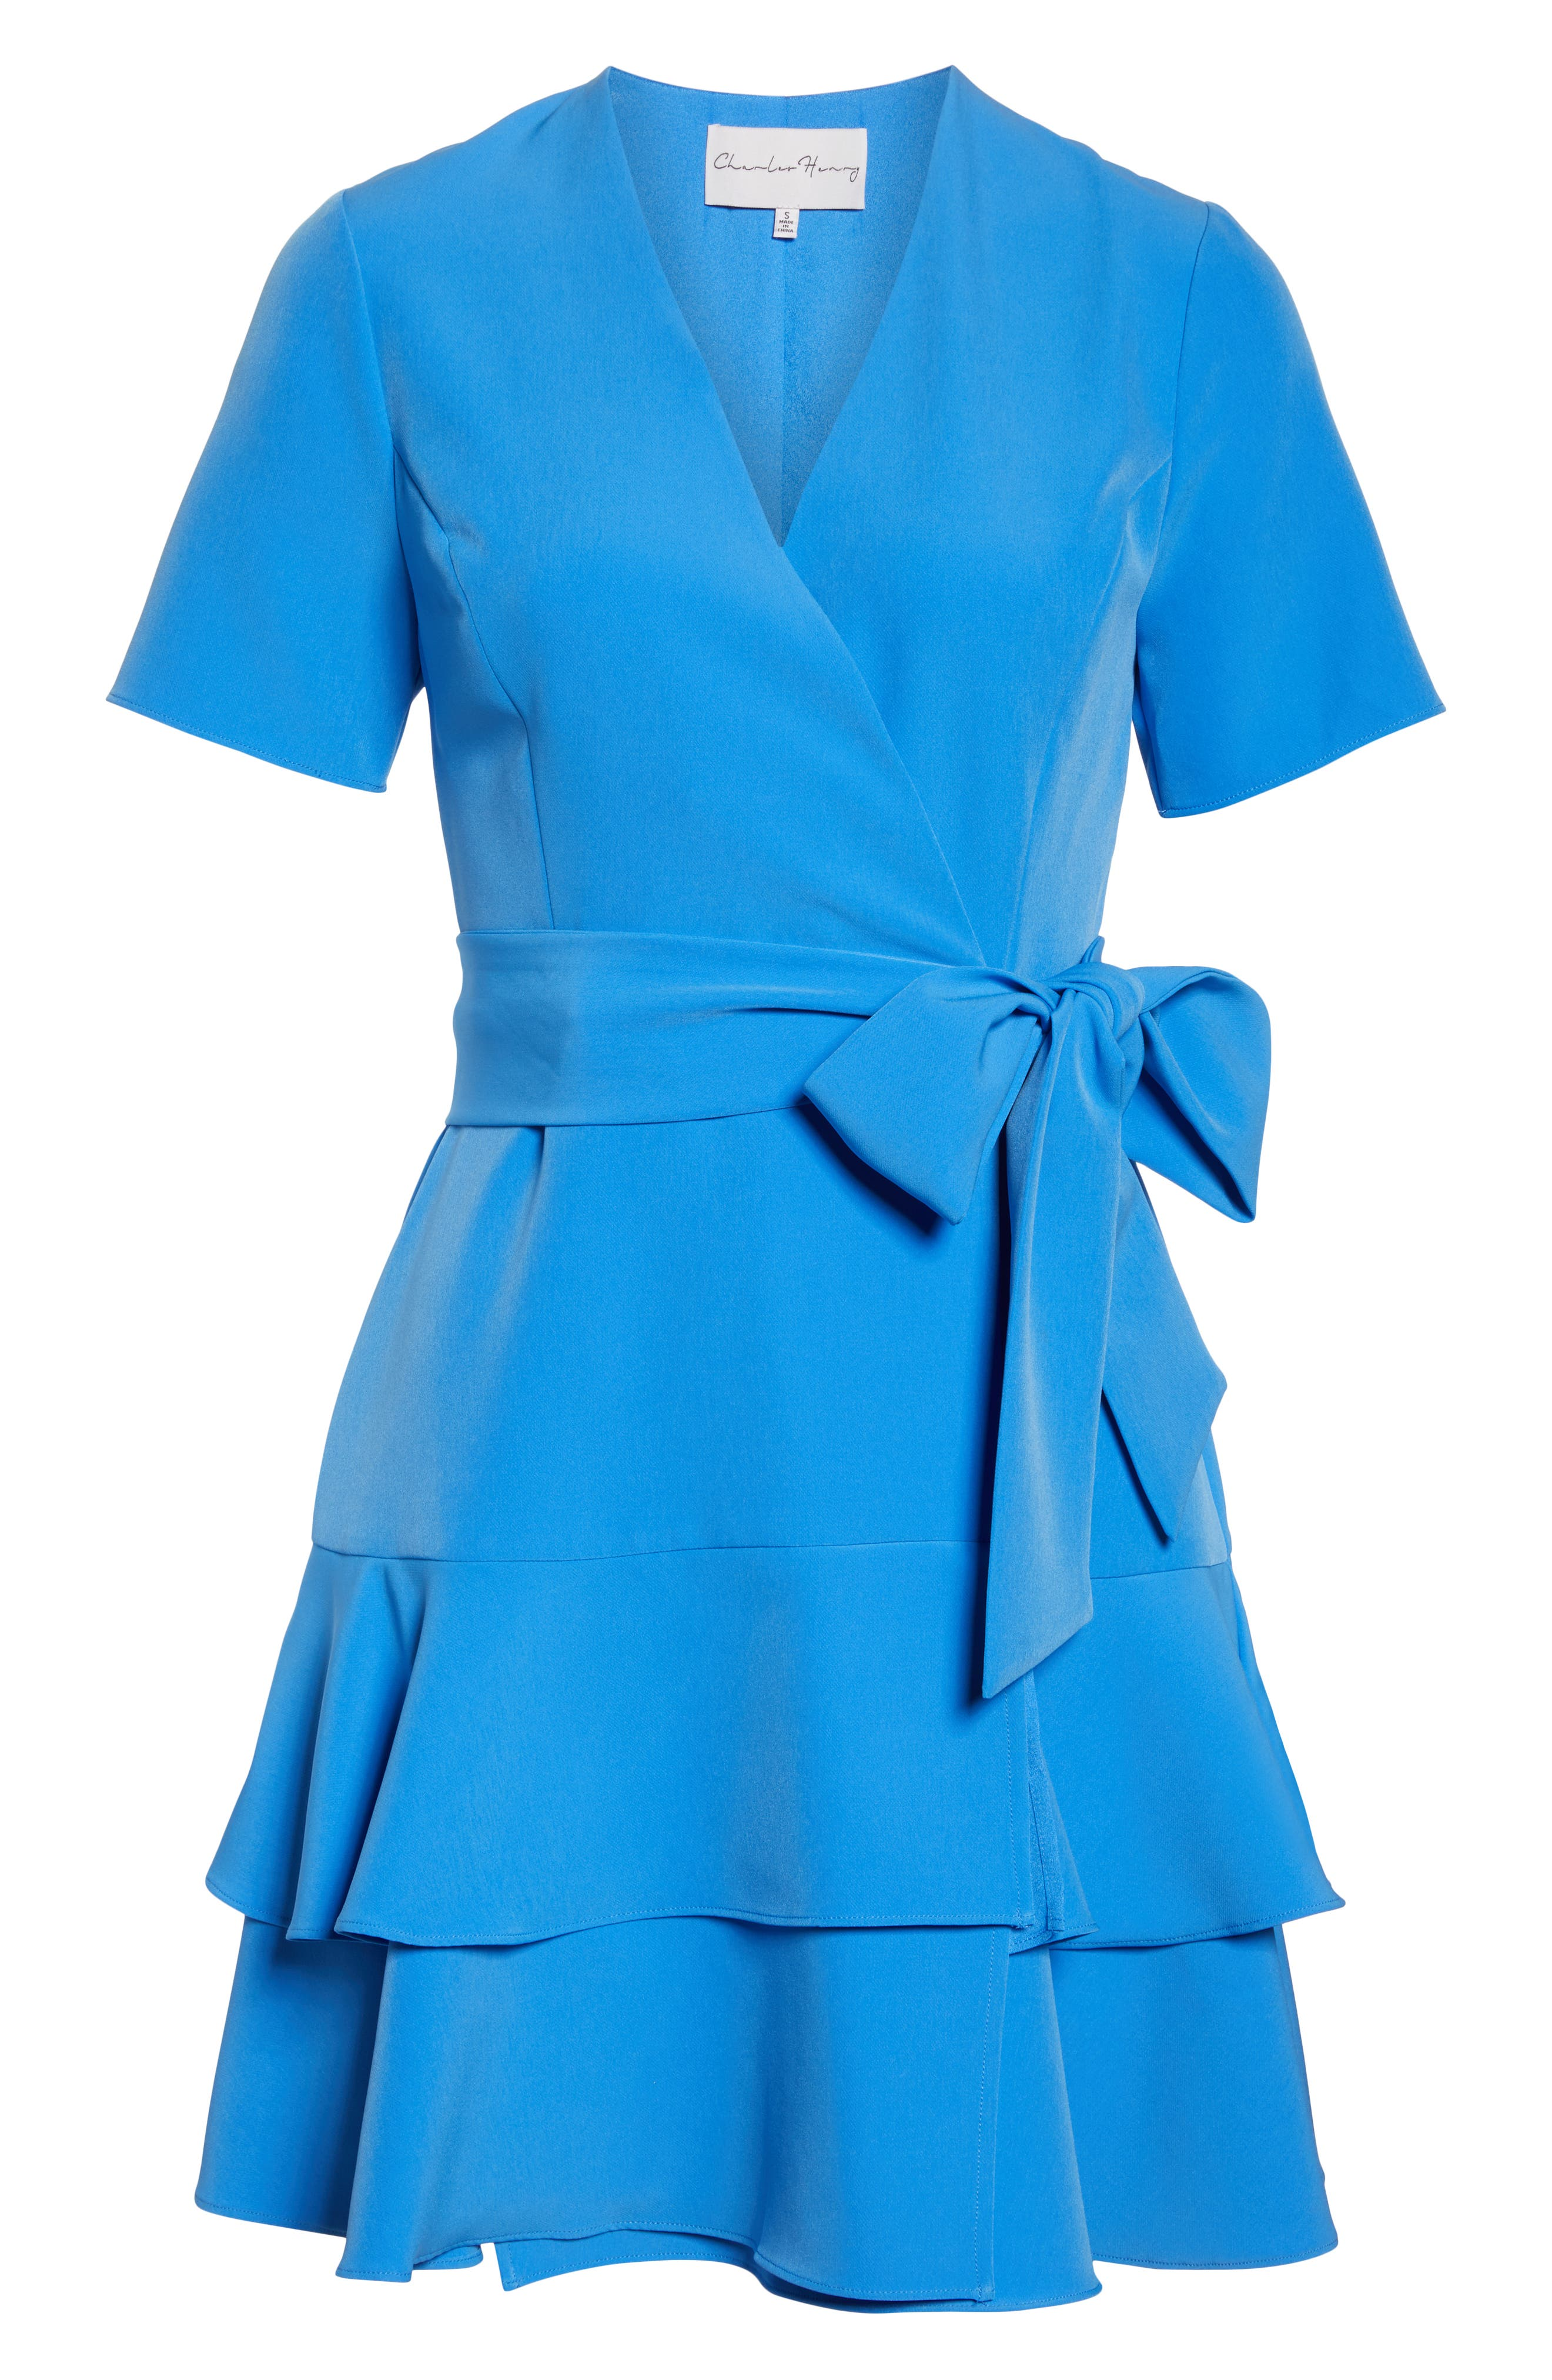 CHARLES HENRY,                             Ruffle Tiered Wrap Dress,                             Alternate thumbnail 7, color,                             DENIM BLUE